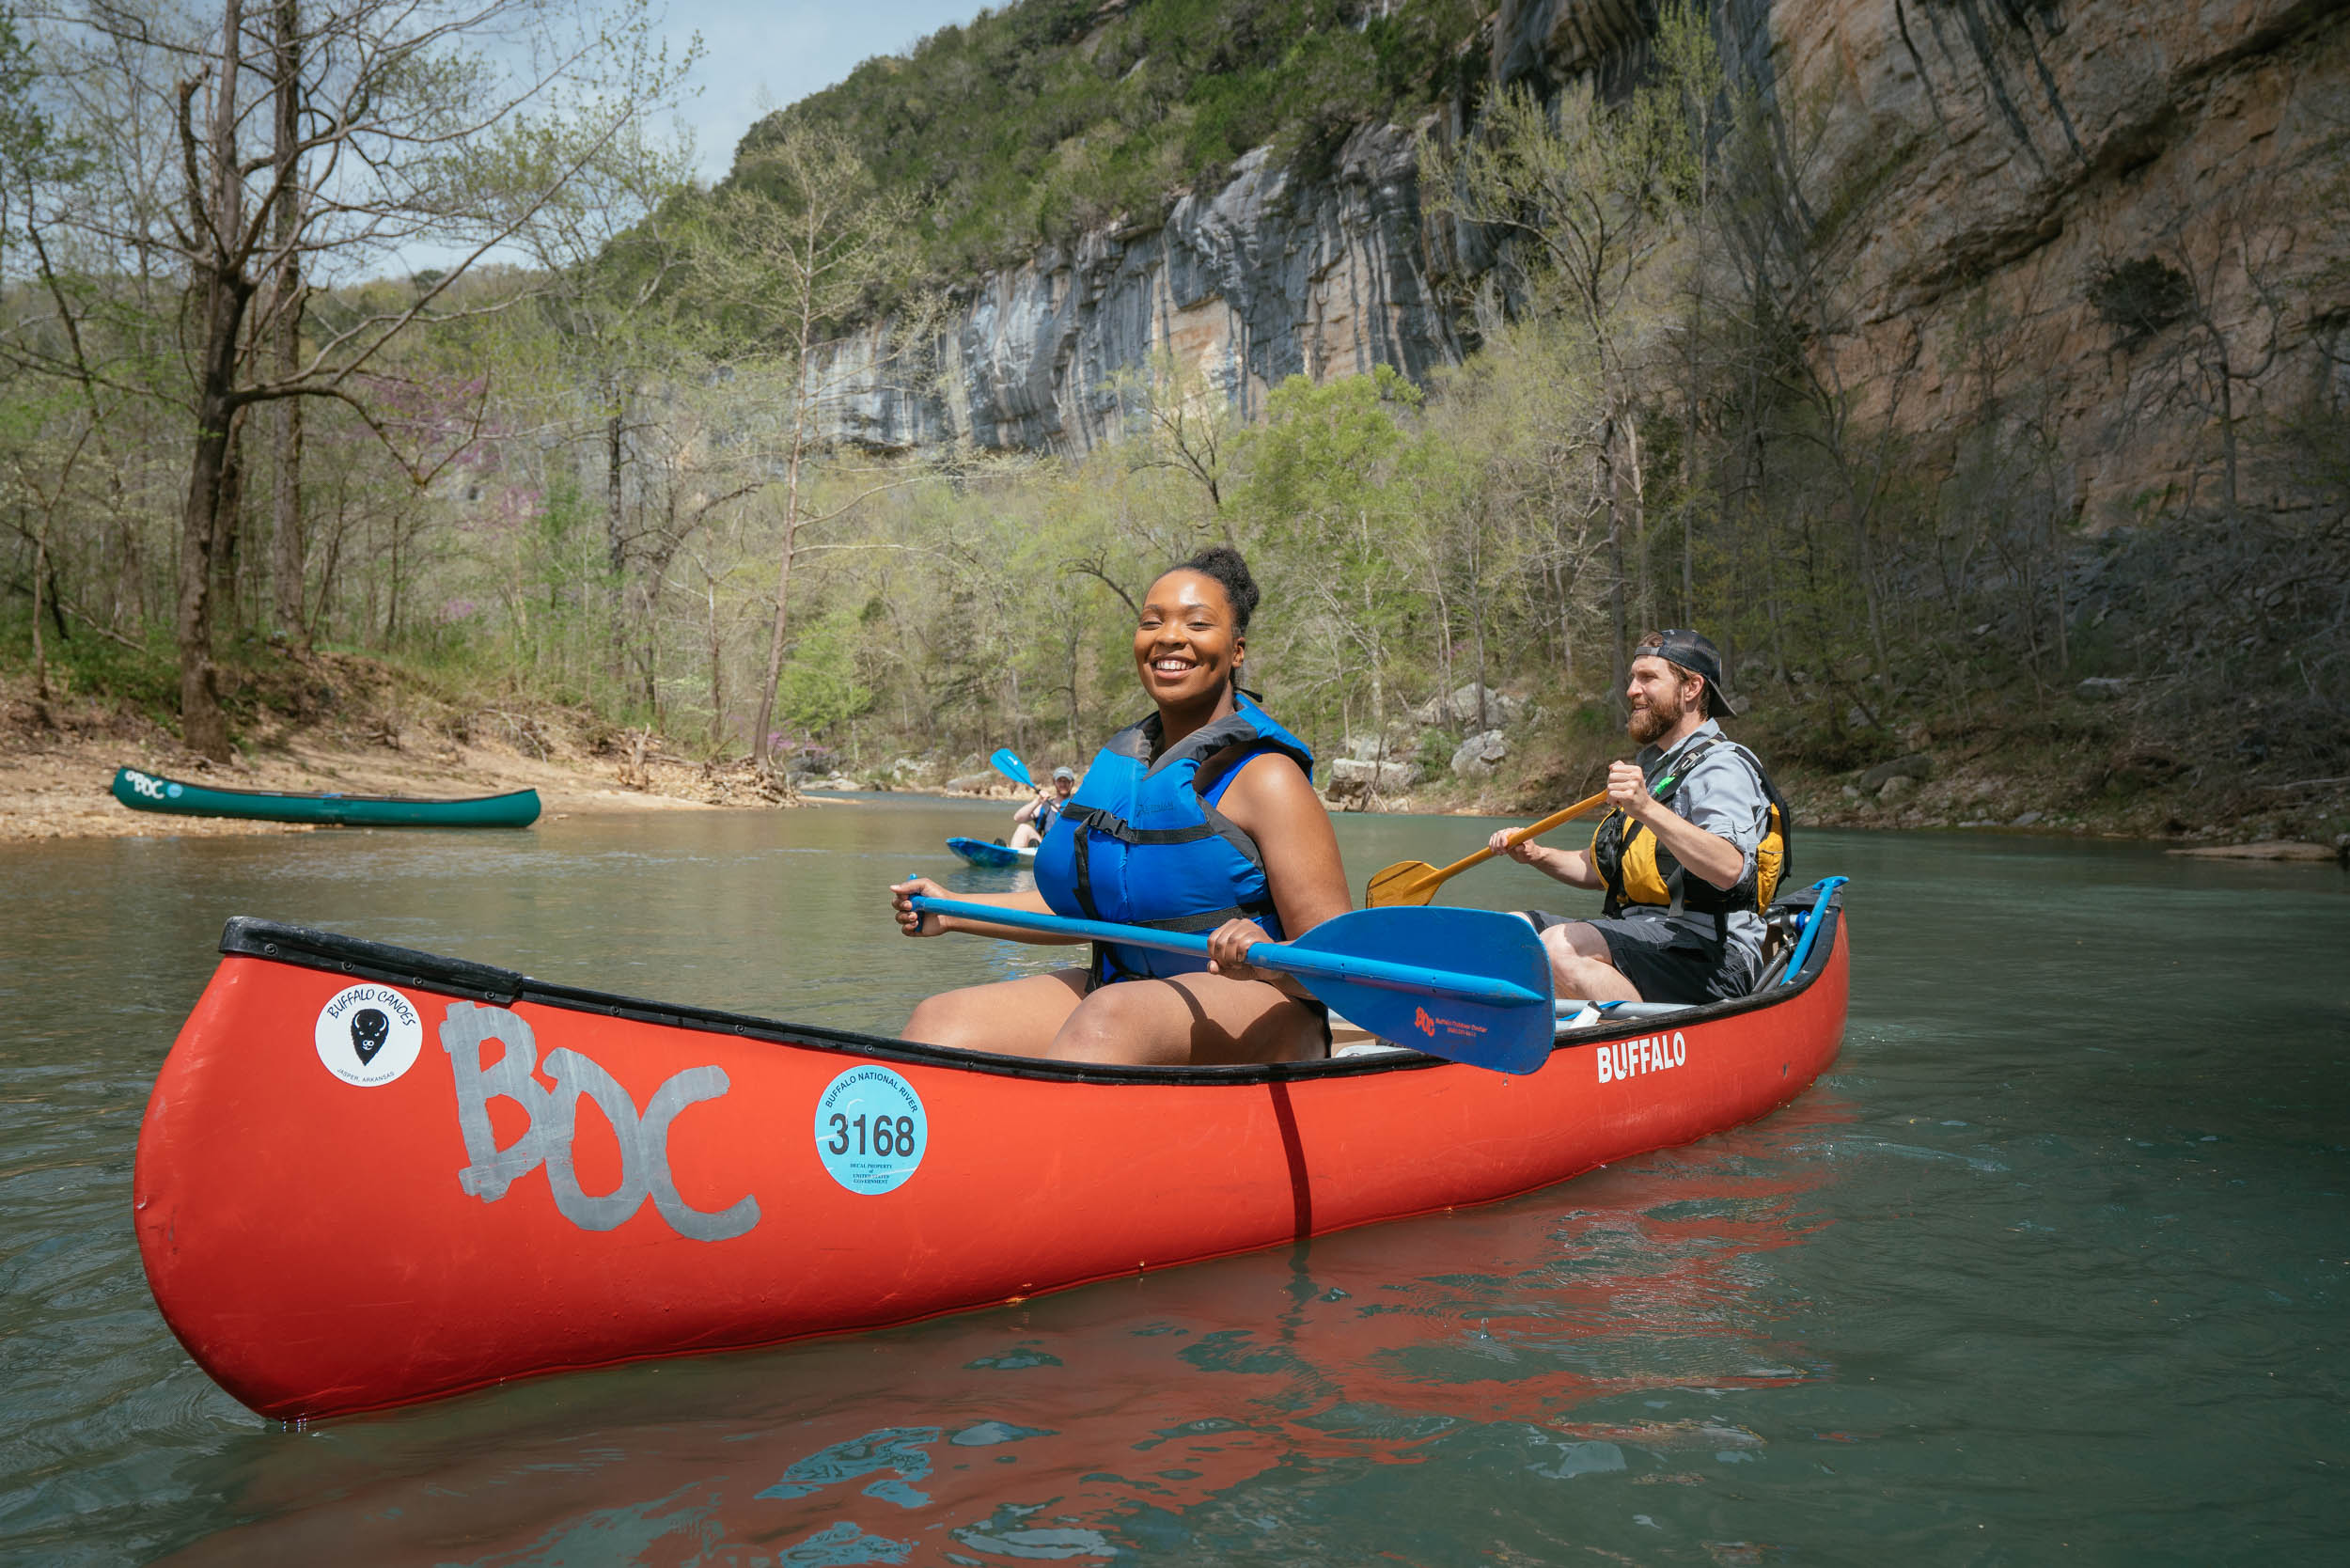 A couple floating in a BOC canoe on Buffalo River